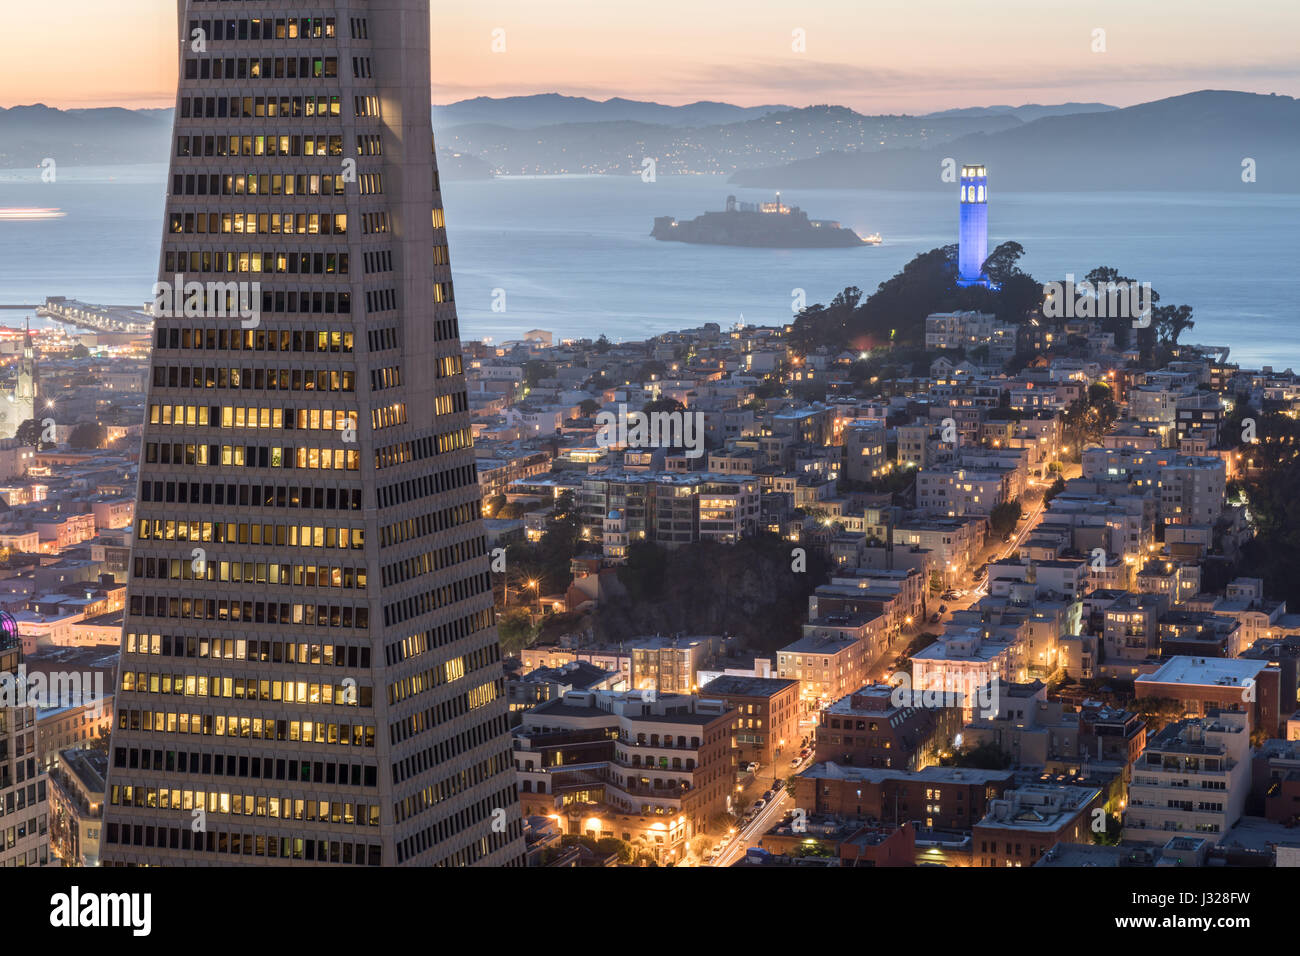 Dusk over Telegraph Hill, Alcatraz Island and San Francisco Bay from the Financial District. - Stock Image